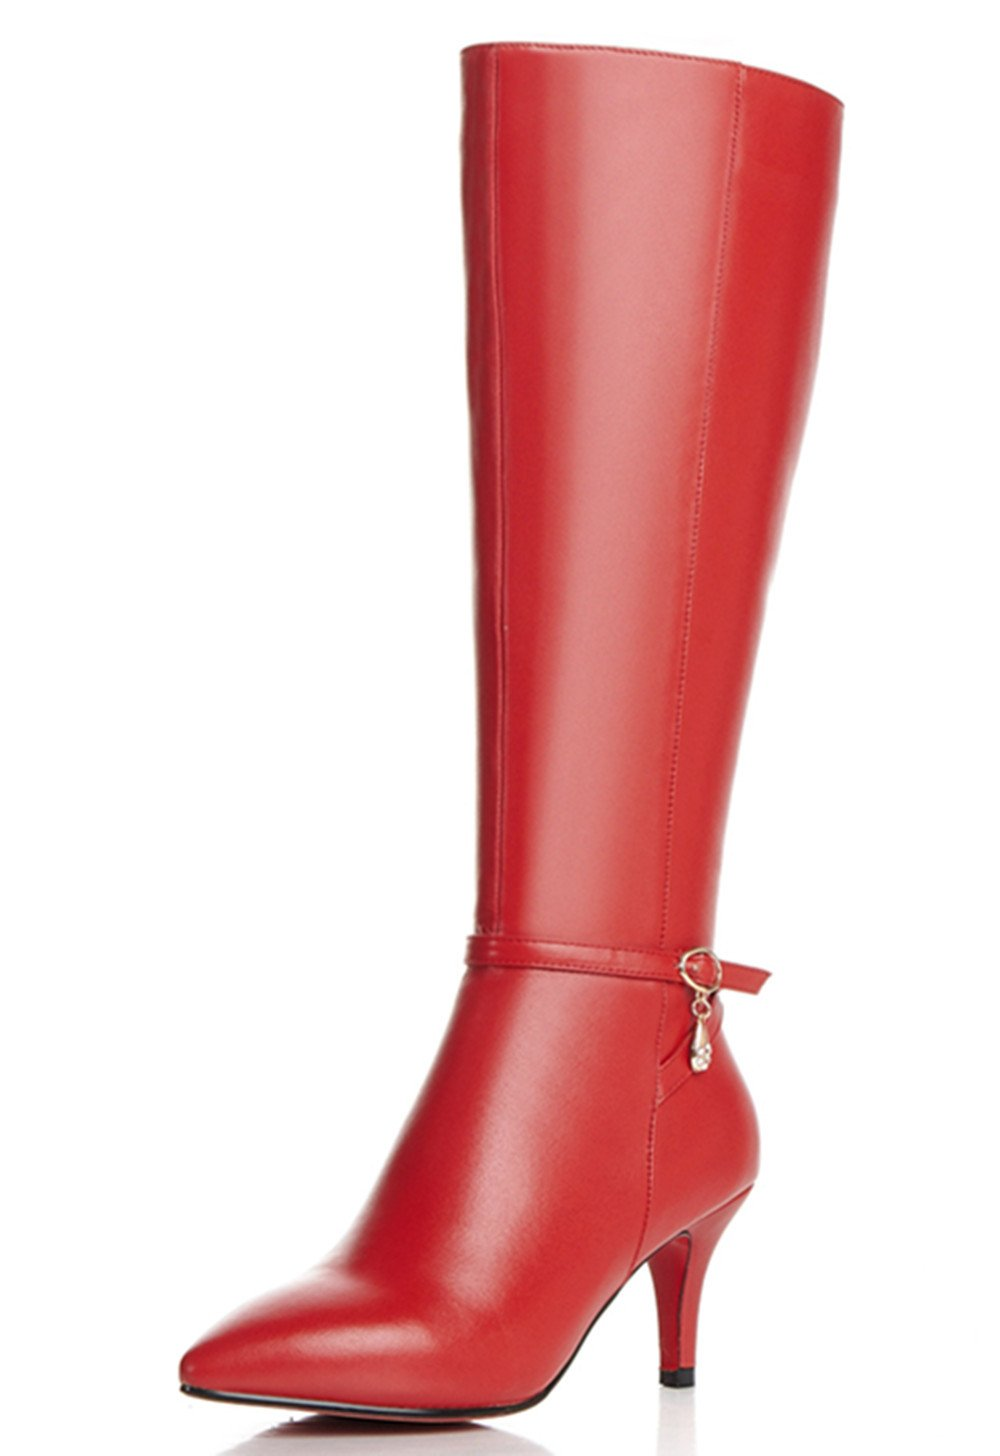 Nine Seven Genuine Leather Women's Pointy Toe Sexy Stiletto Heel Dress Knee High Handmade Boot B01LXL7AL8 7.5 B(M) US|Red